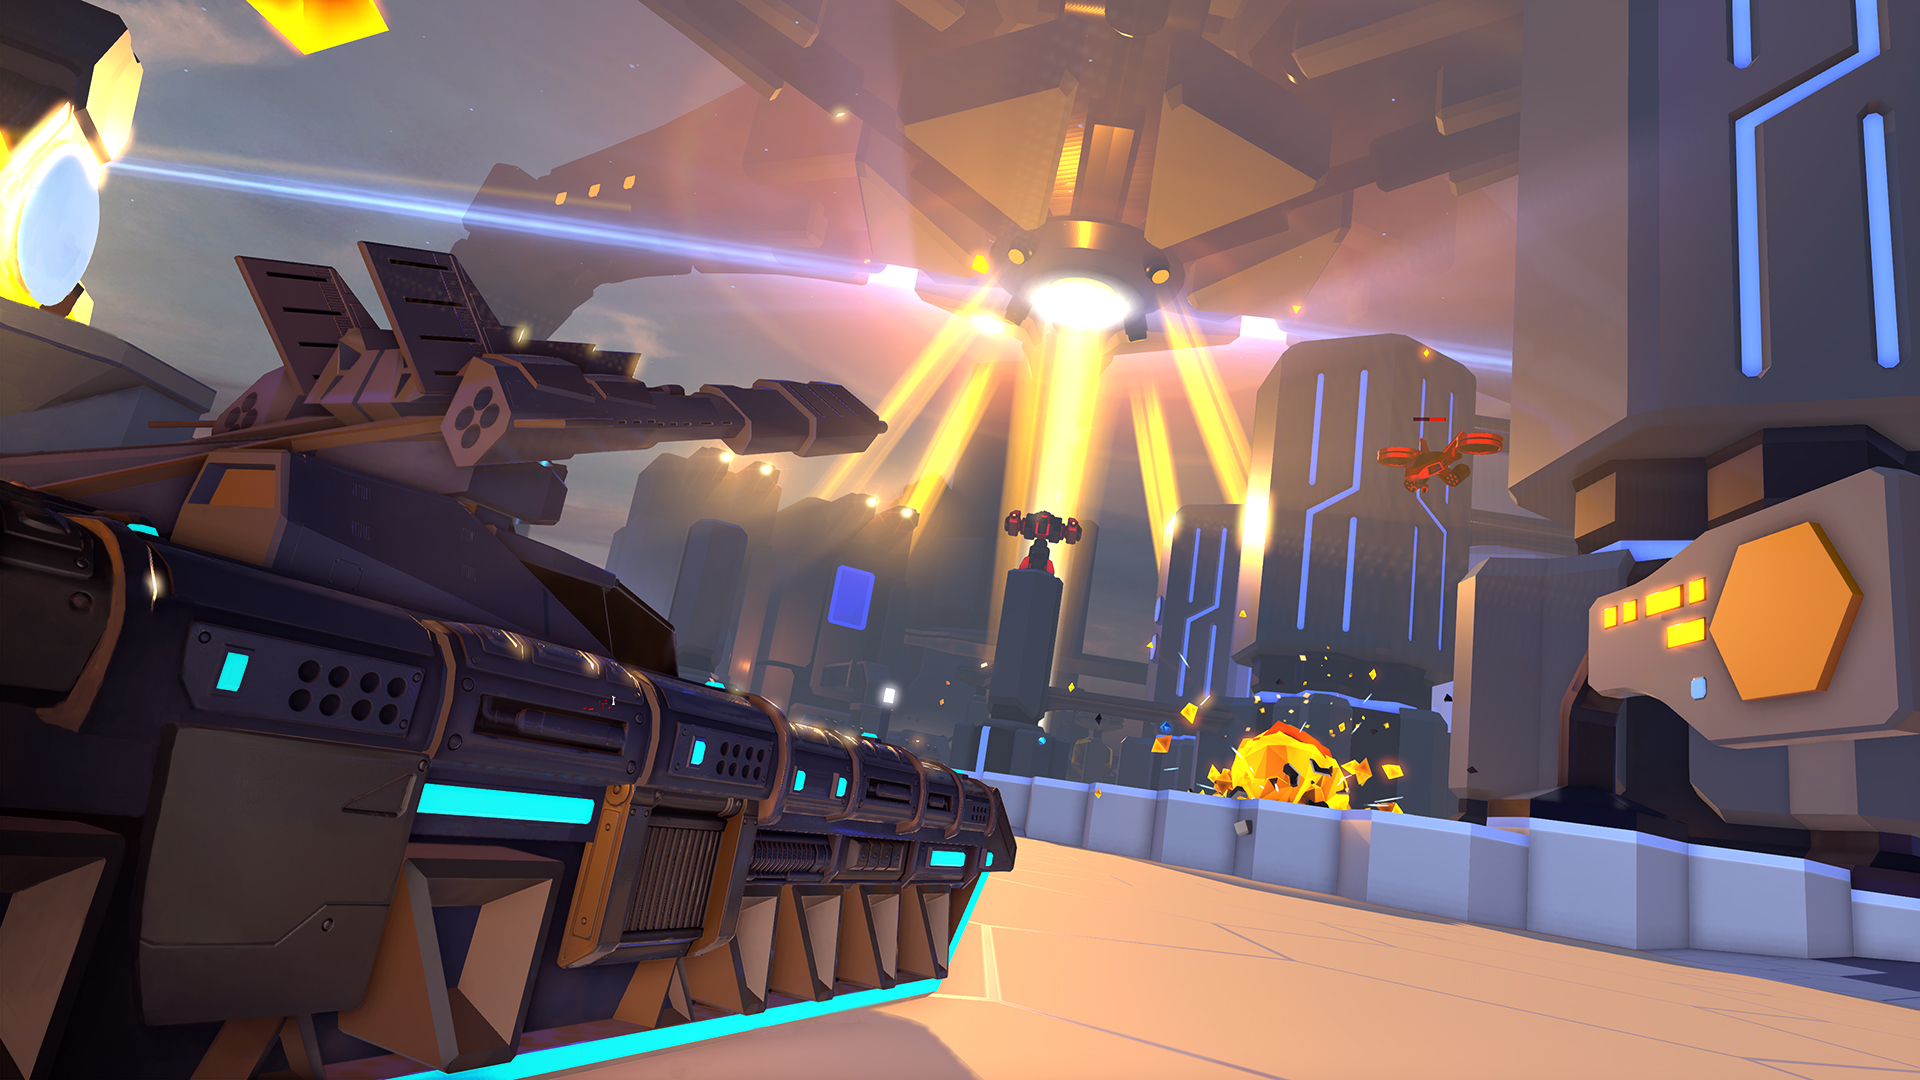 Play tank sim ''Battlezone' without a VR headset May 1st